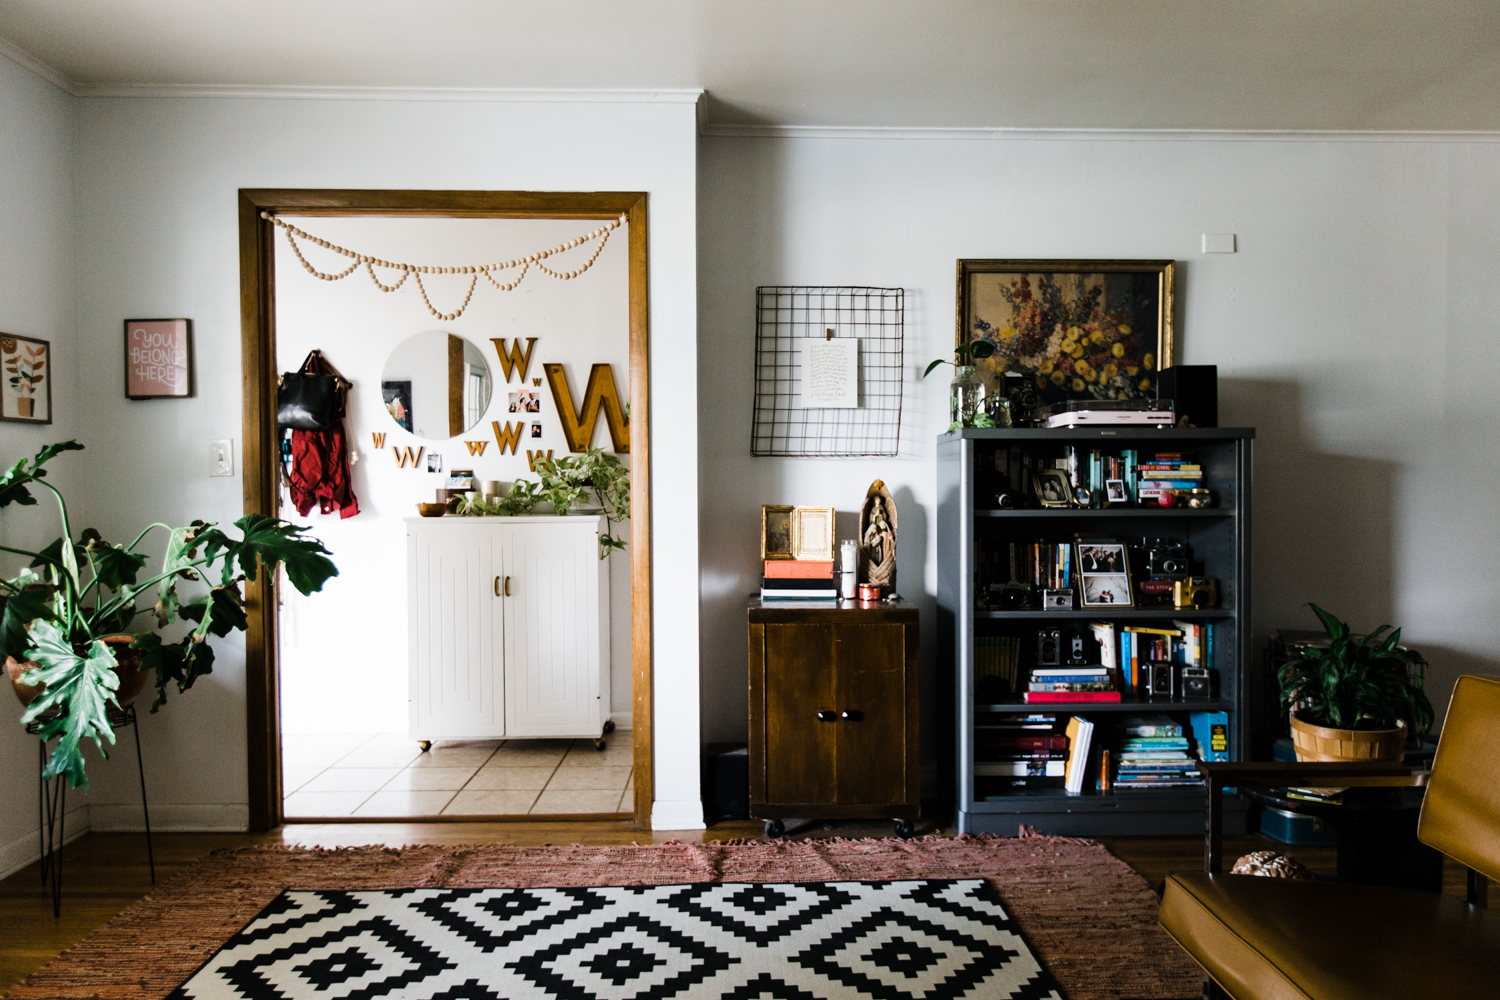 Abbey-Wells-Home-eclectic-colorful-home-WEB-82.jpg